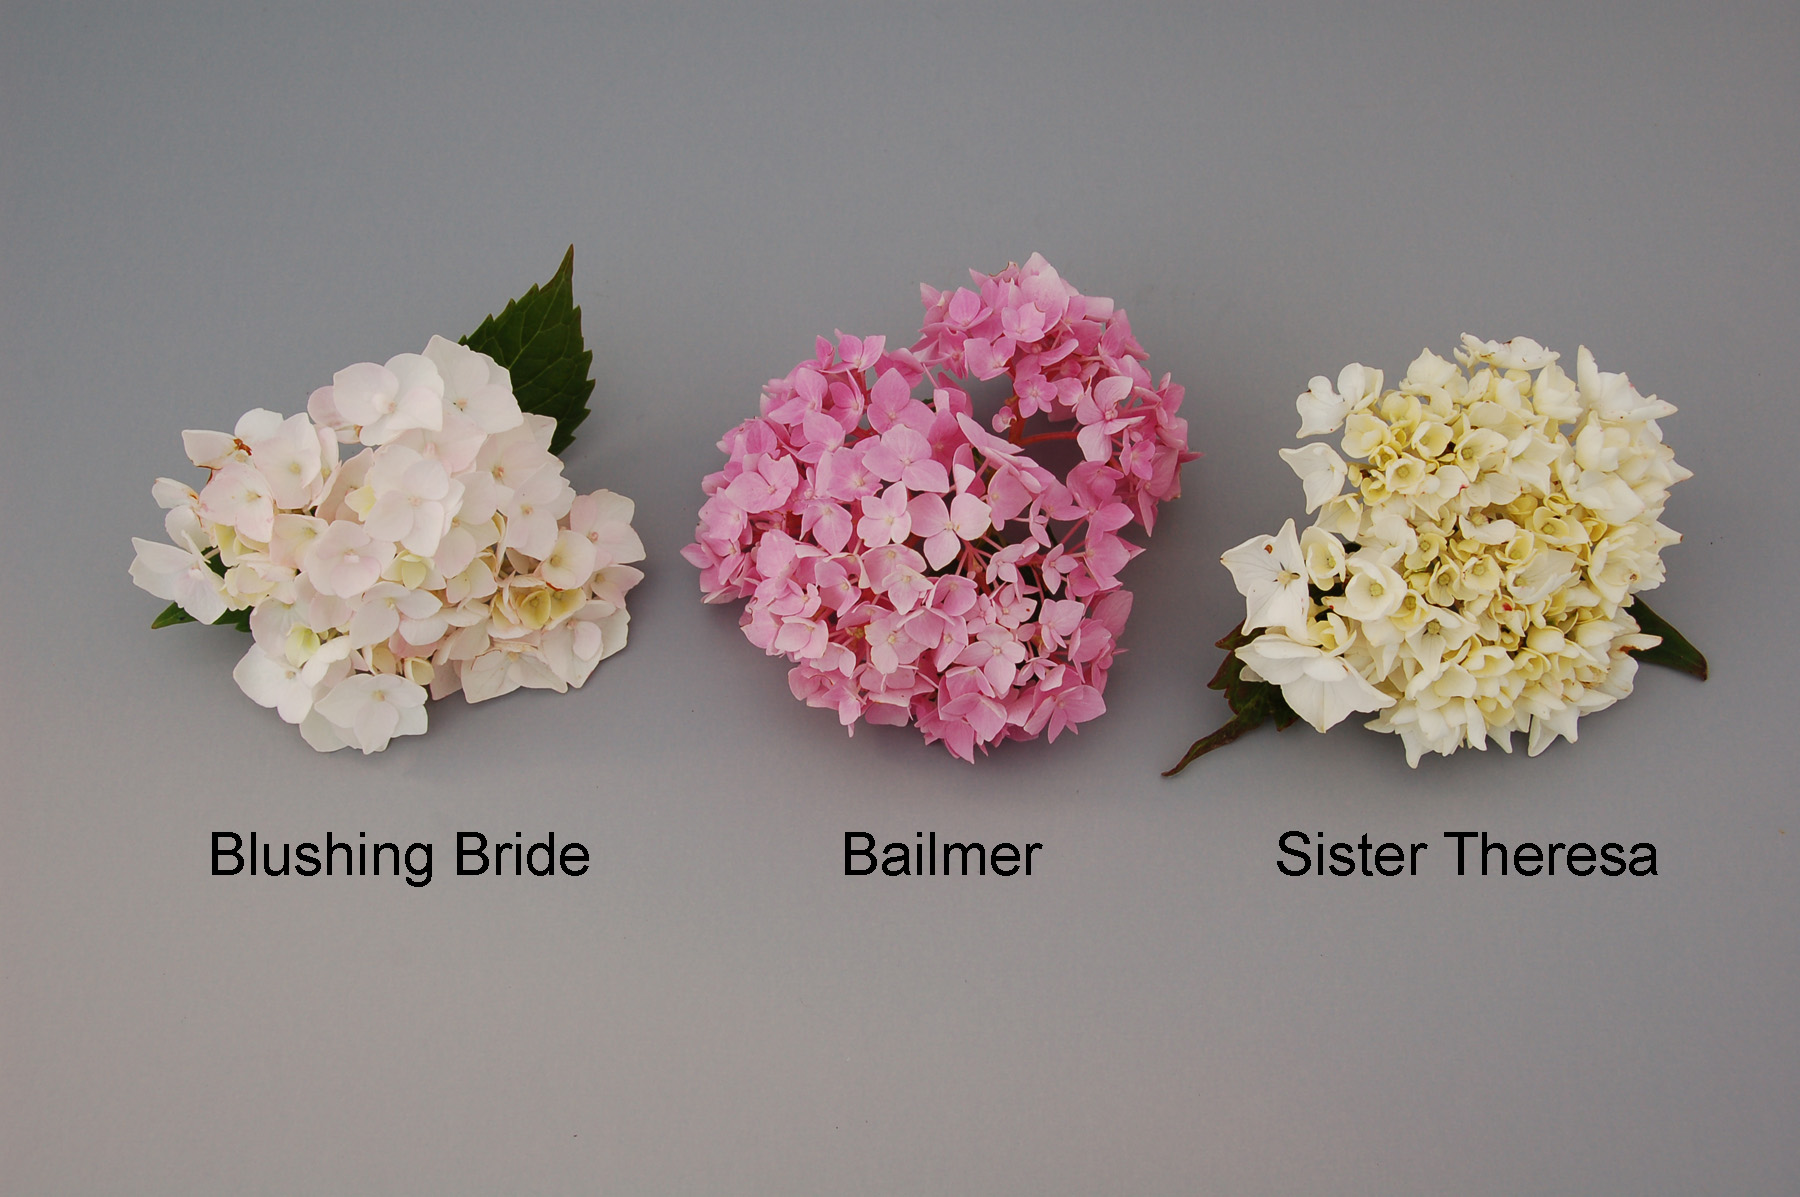 Perky With Reference Varieties Canadian Food Inspection Agency Blushing Bride Blushing Bride Hydrangea Winter Care Blushing Bride Hydrangea Near Me houzz 01 Blushing Bride Hydrangea